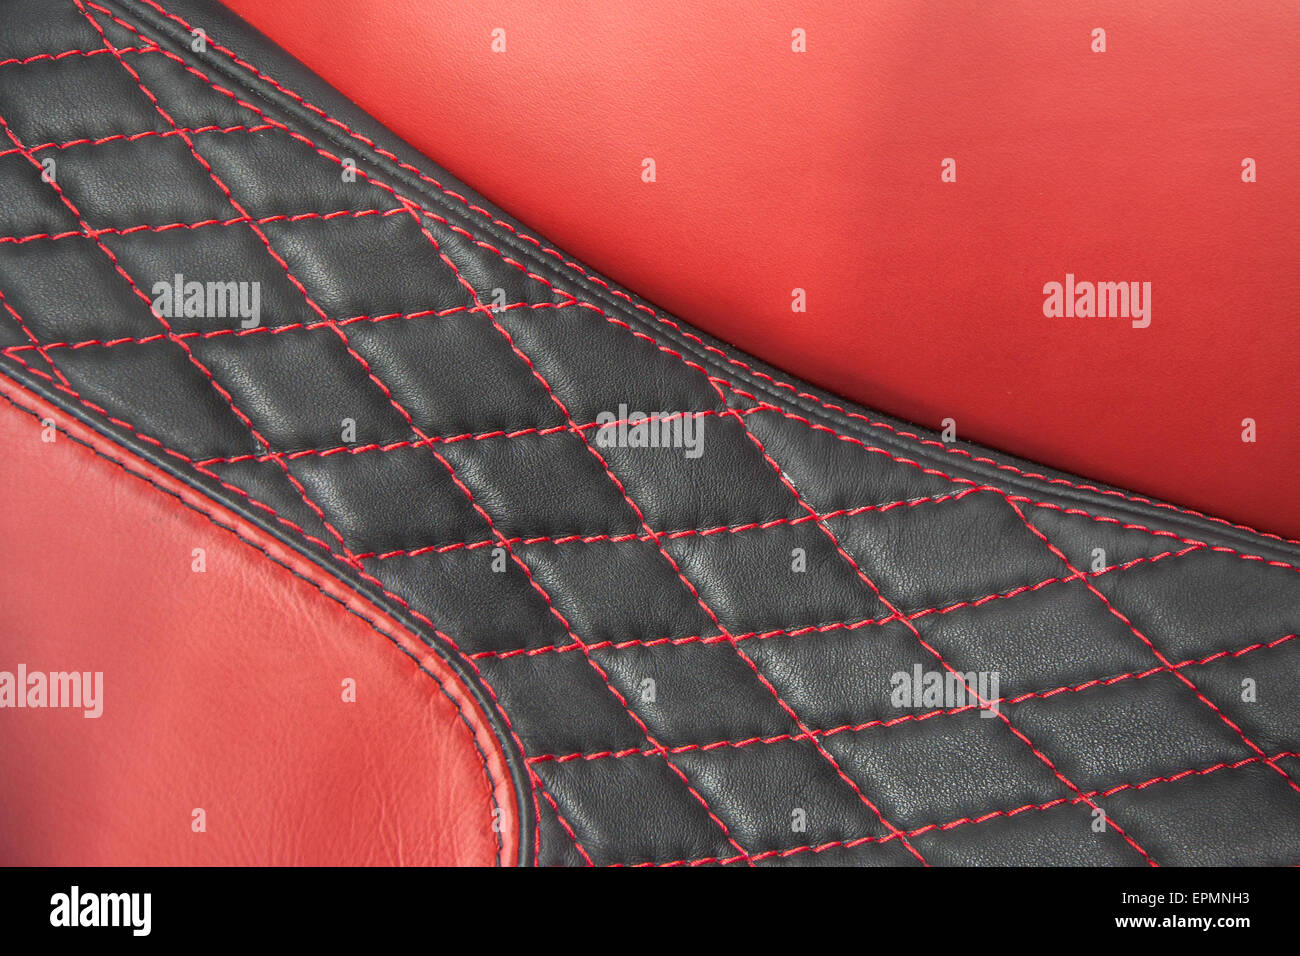 Red upholstery - Stock Image